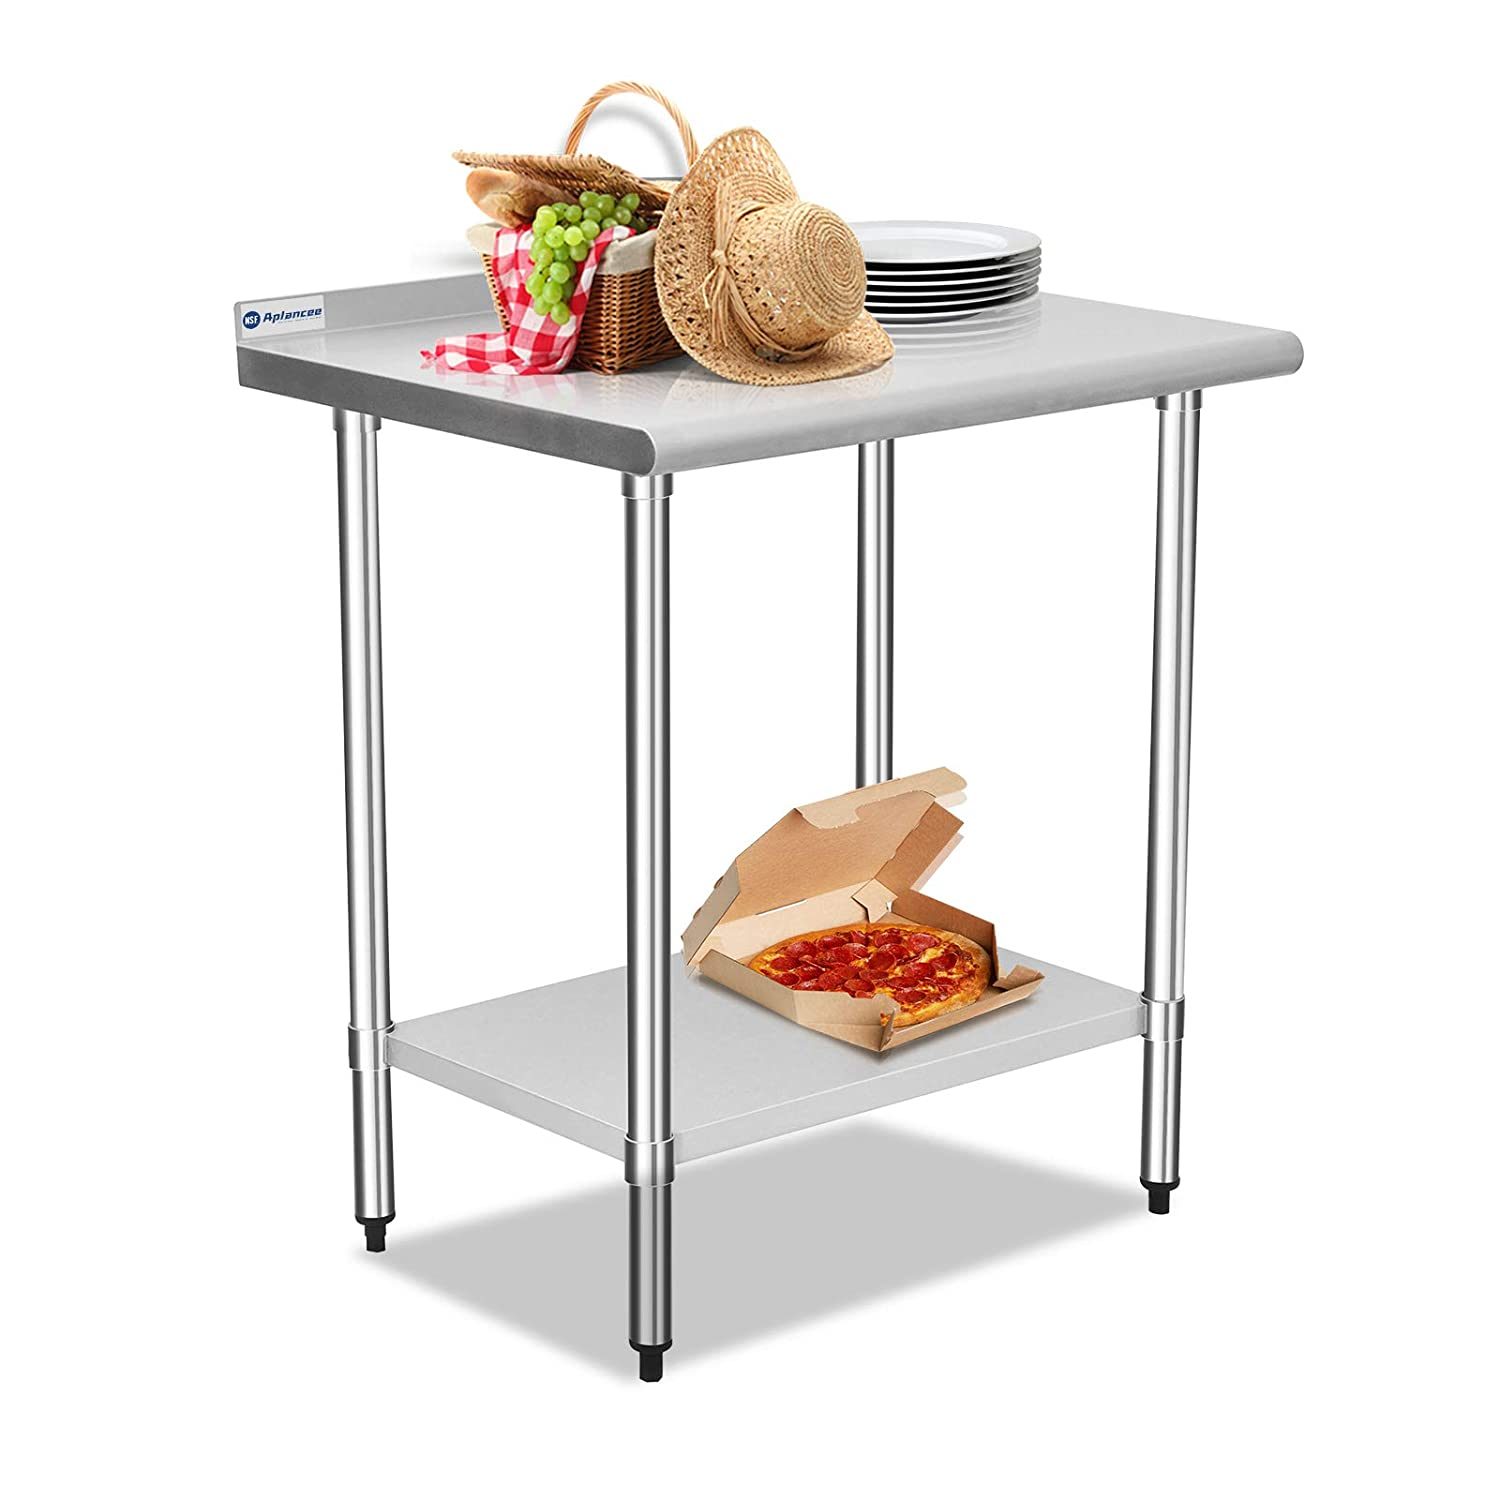 Aplancee Stainless Steel Prep & Work Table 30 x 24 Inches with Backsplash and Adjustable Undershelf Metal Utility Workstations for Kitchen or Restaurant Supplies